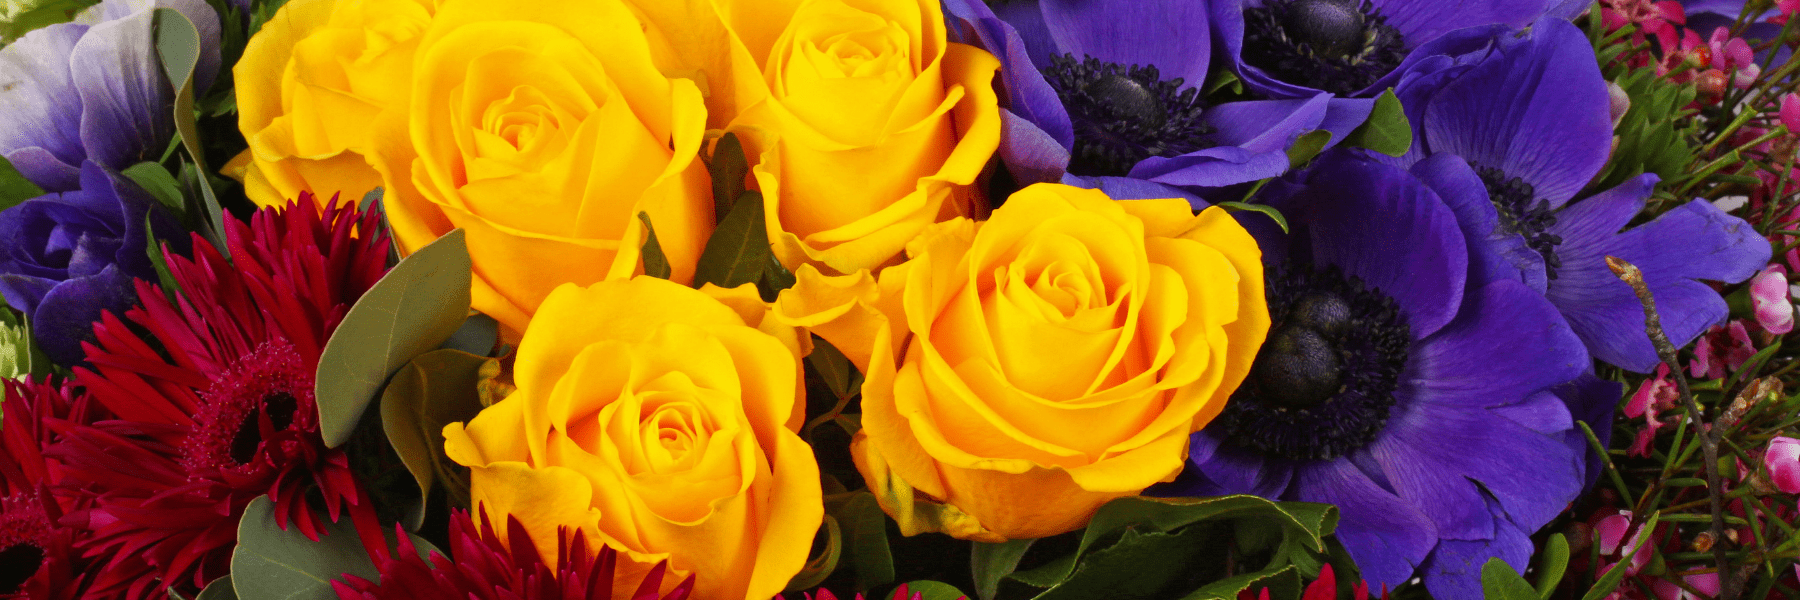 A close up image of a bright bouquet of freshly cut flowers including red gerbera and yellow roses